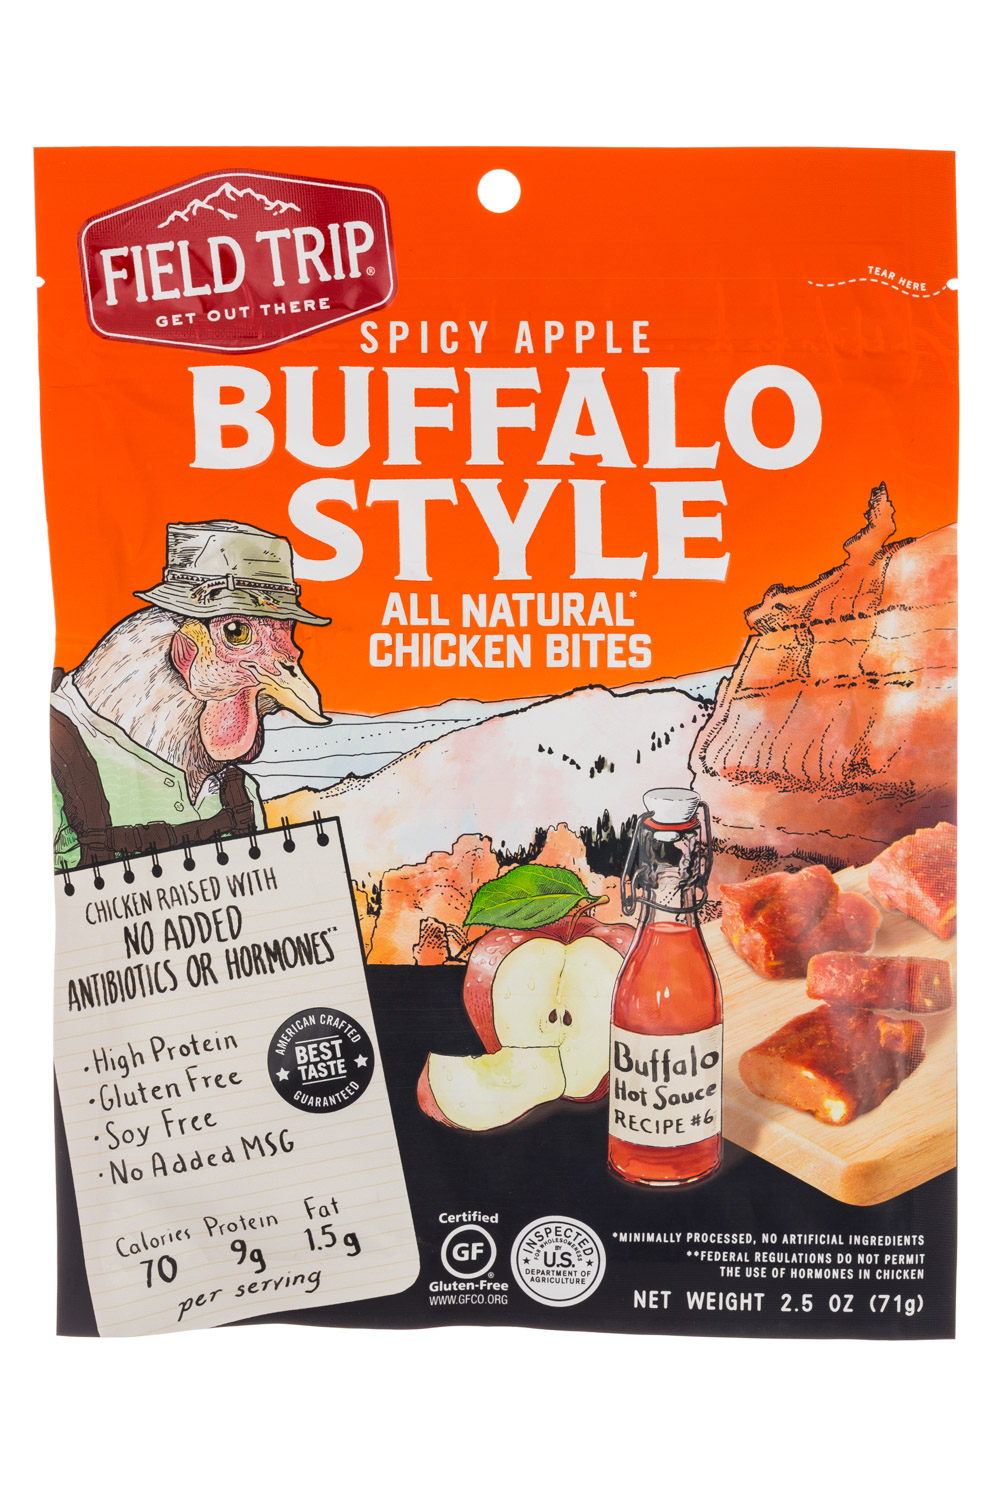 Spicy Apple Buffalo Style